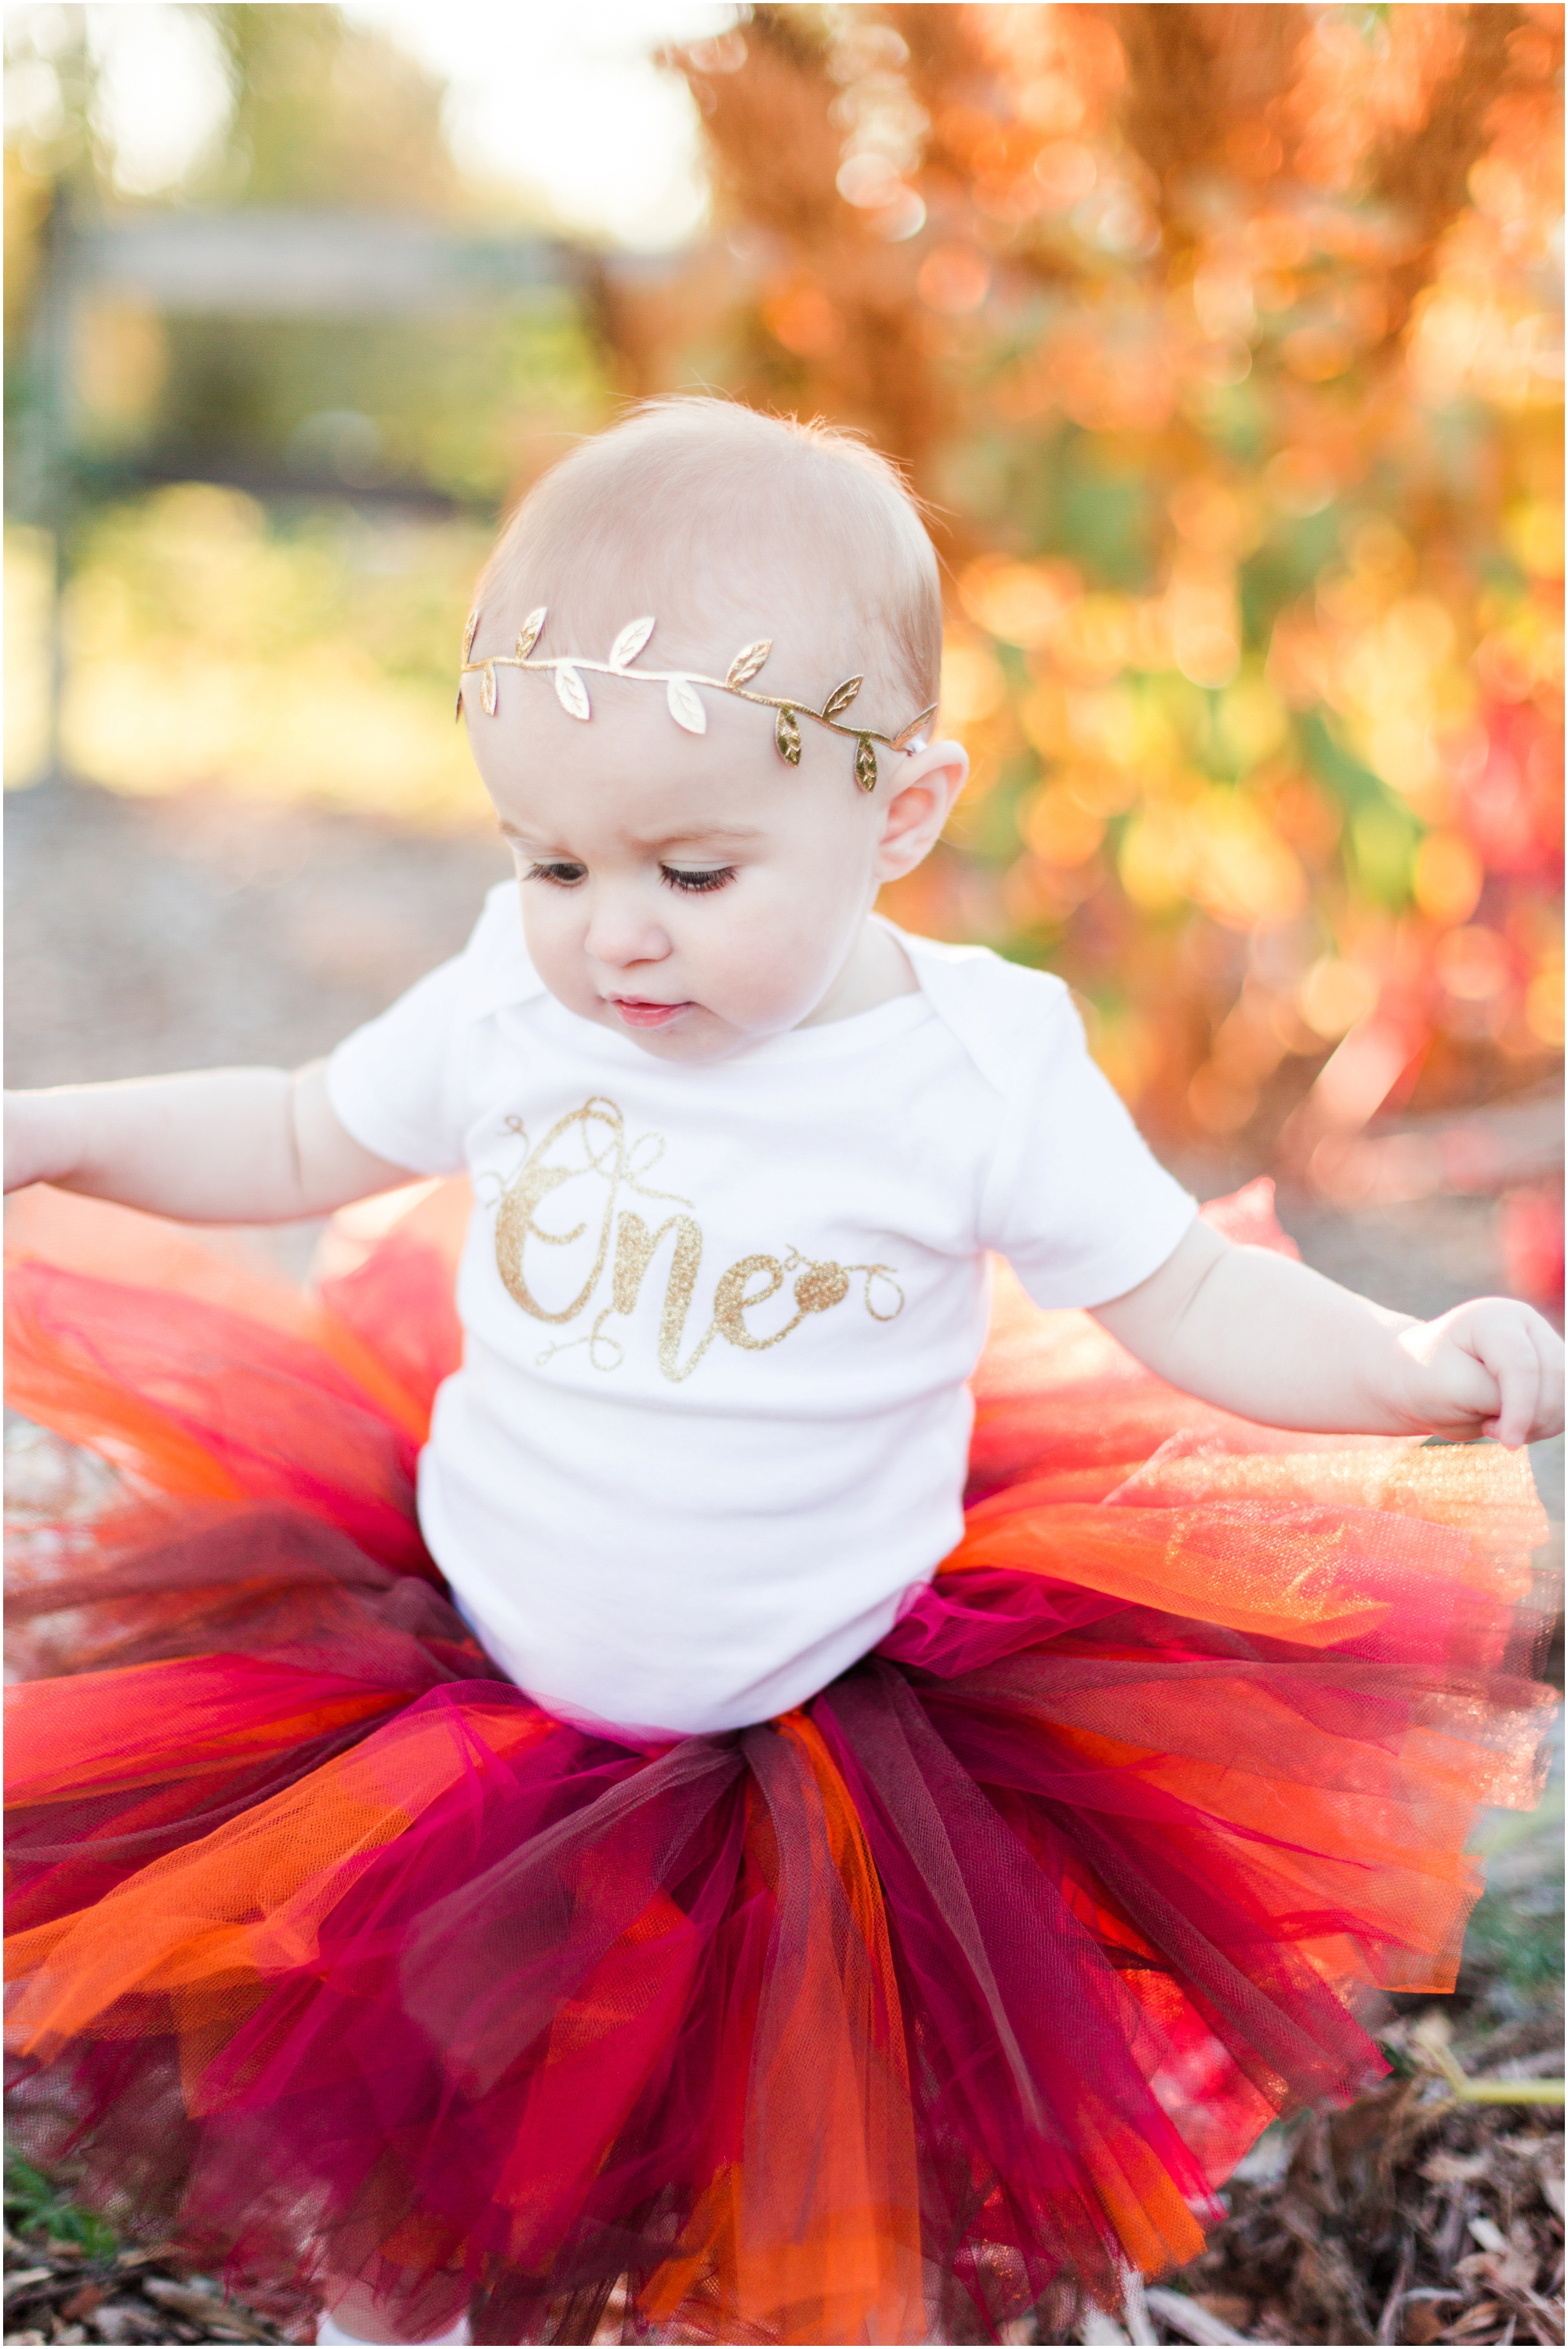 One Year old portriats by Briana Calderon Photography based in the Greater Seattle & Tacoma, WA_0954.jpg